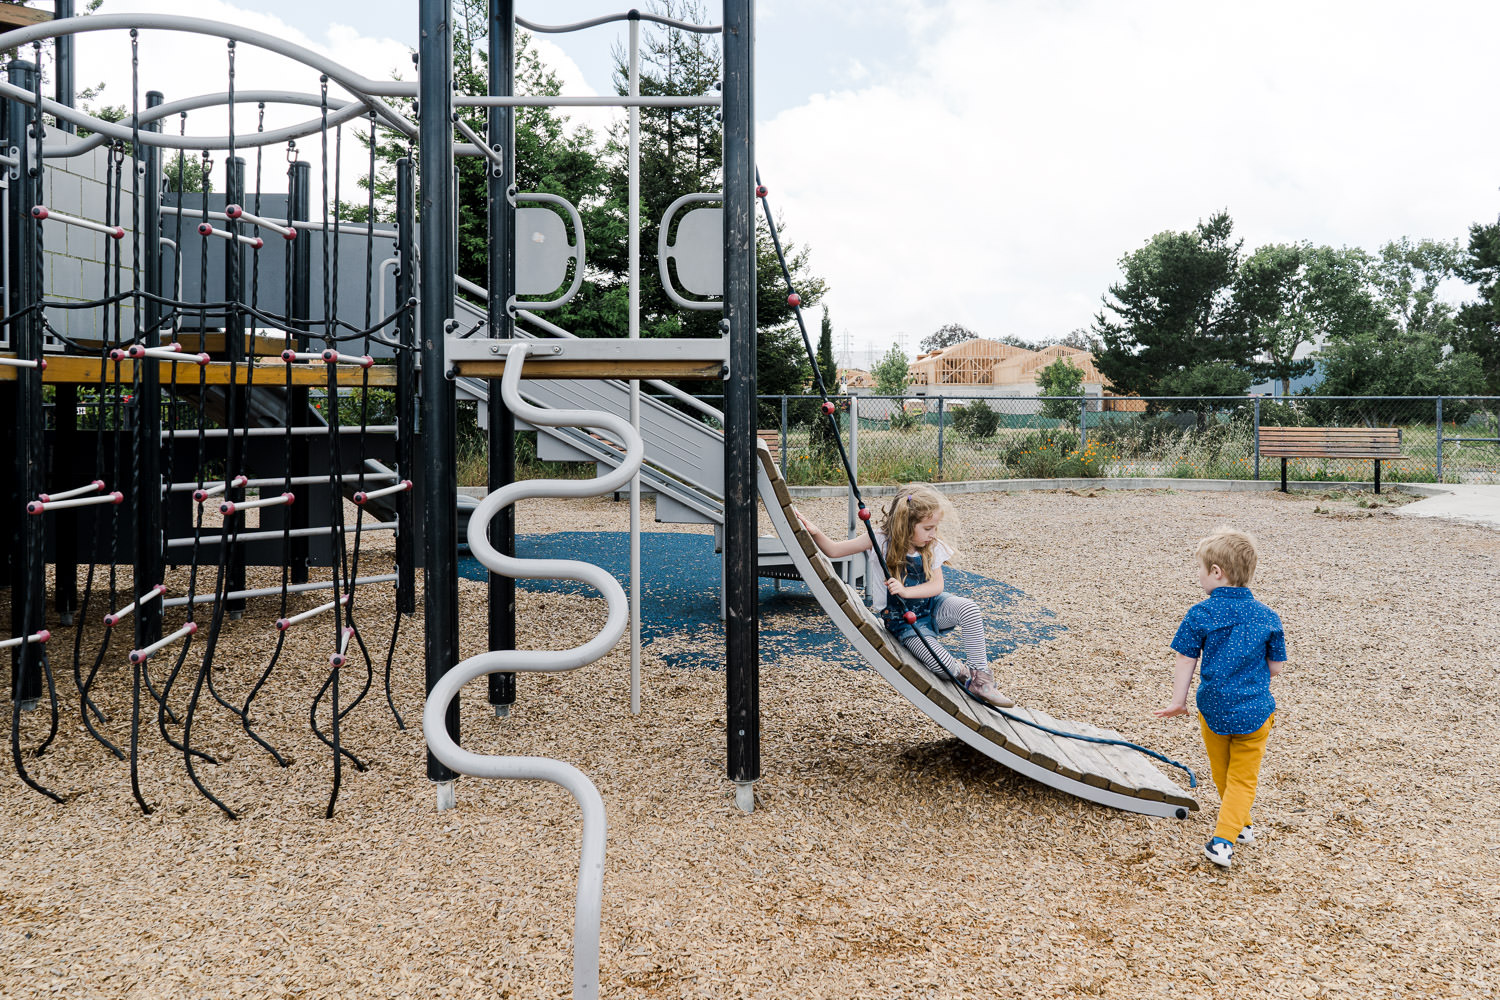 Two children play on a playground.